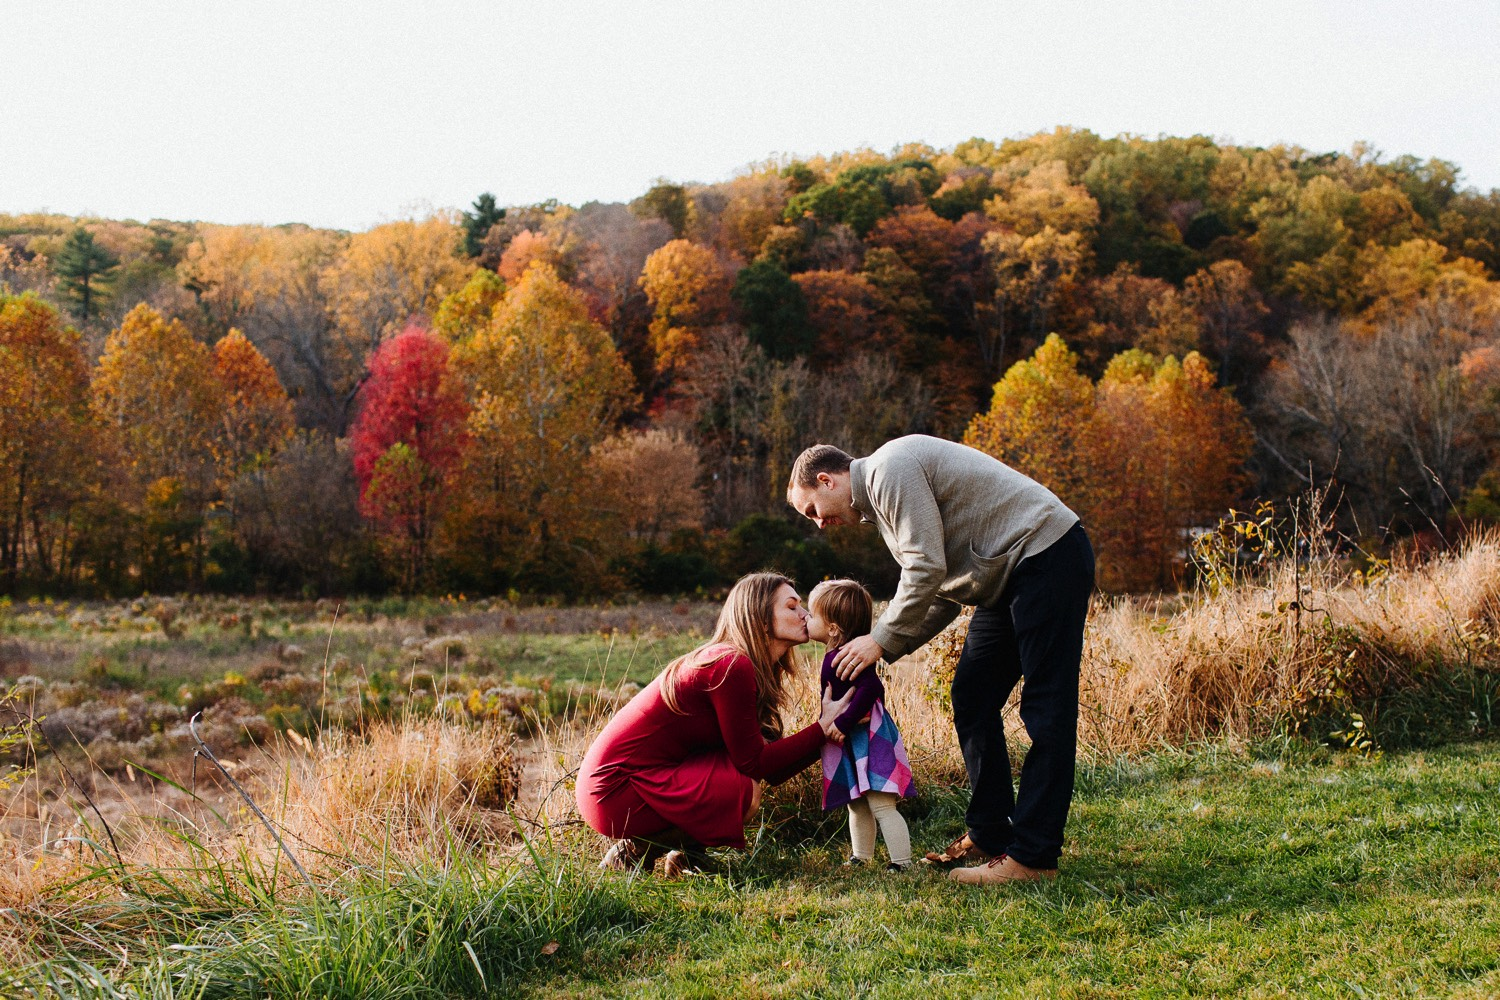 0011_17_11_04_morris_family0087_photography,_fall_leaves_kids_family.jpg